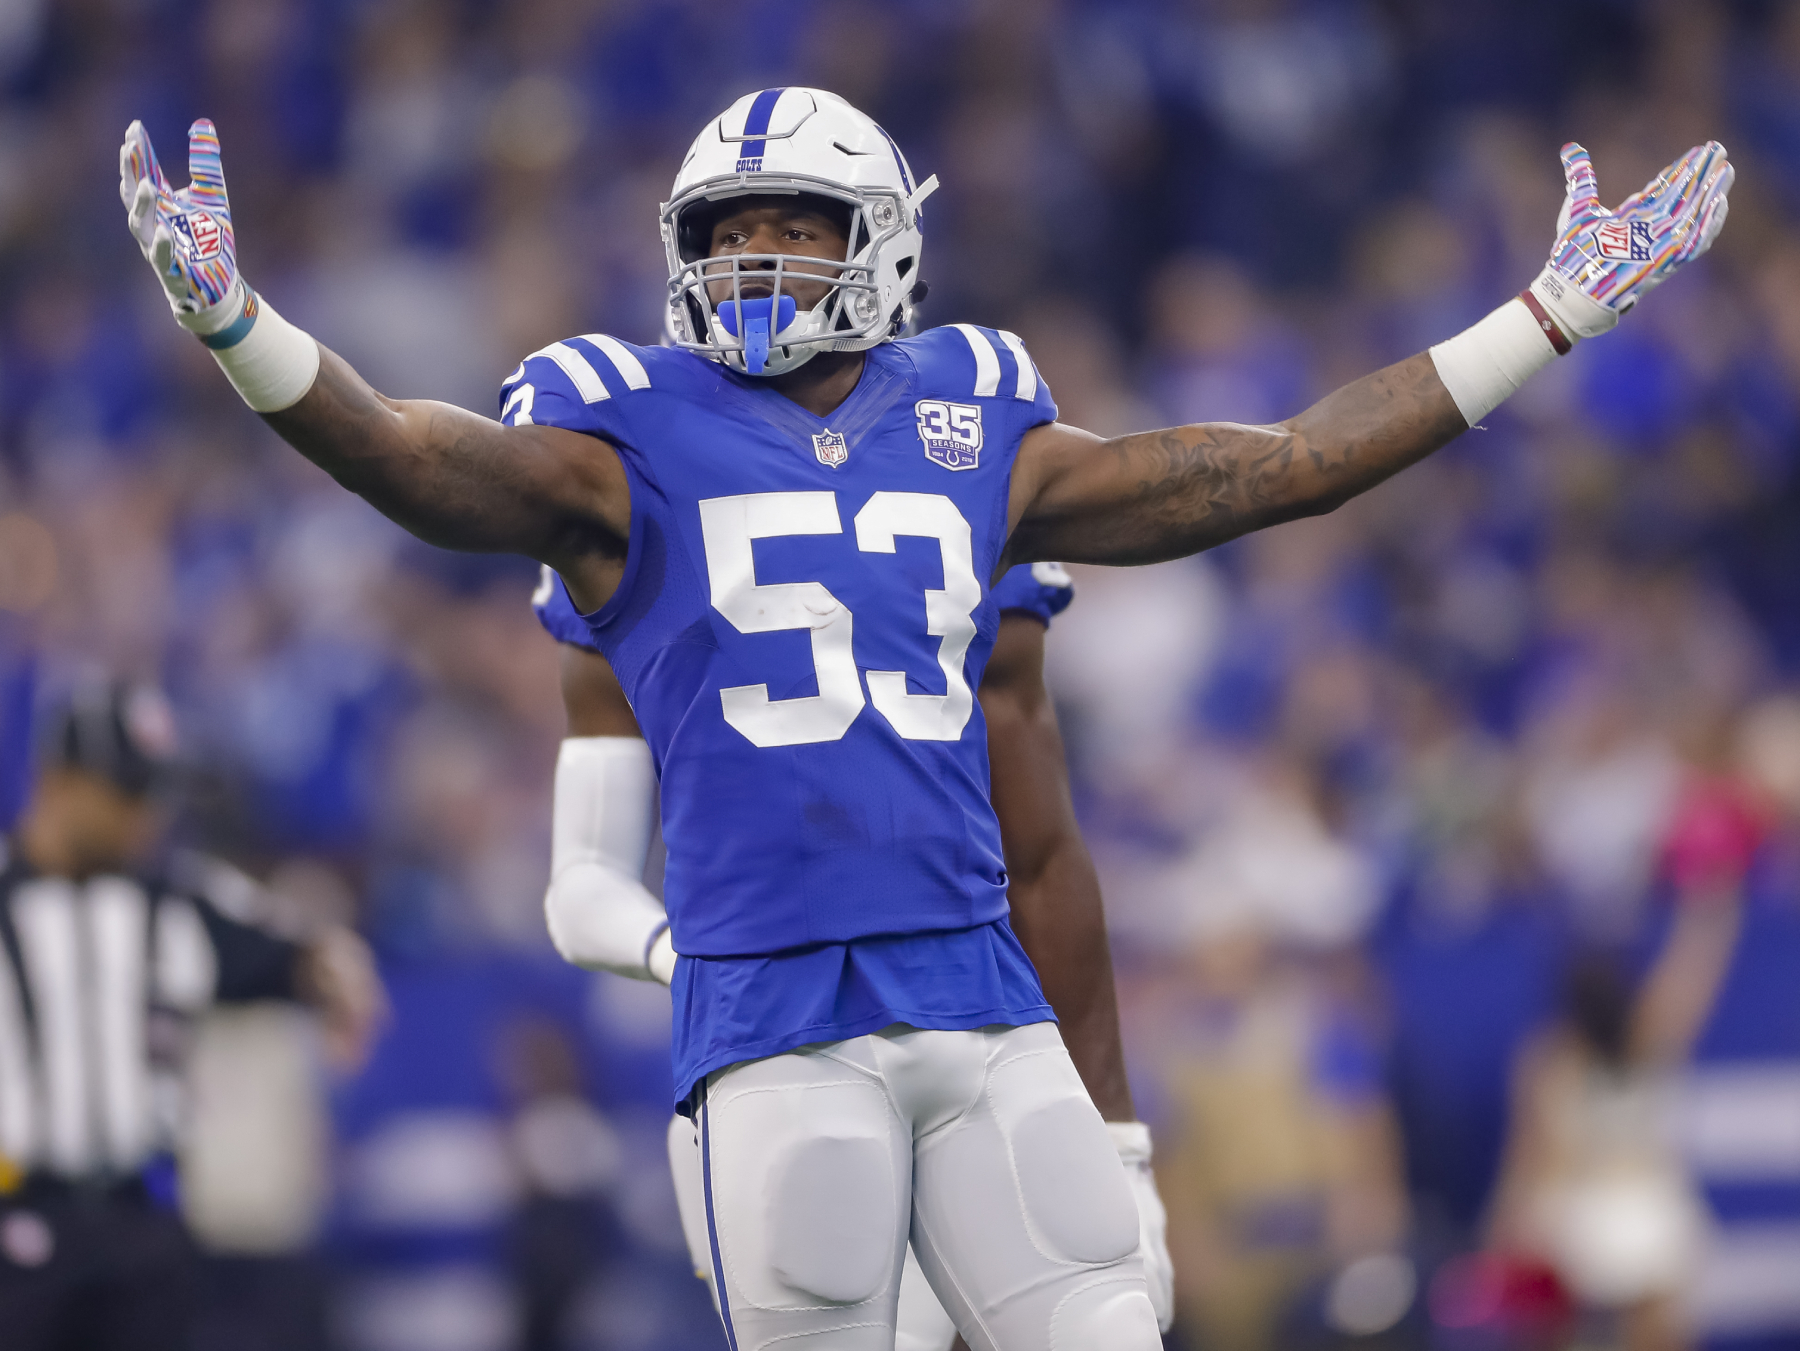 Darius Leonard is one of the best linebackers in the NFL and has dominated for the Colts. He has, however, had to overcome a few tragedies.